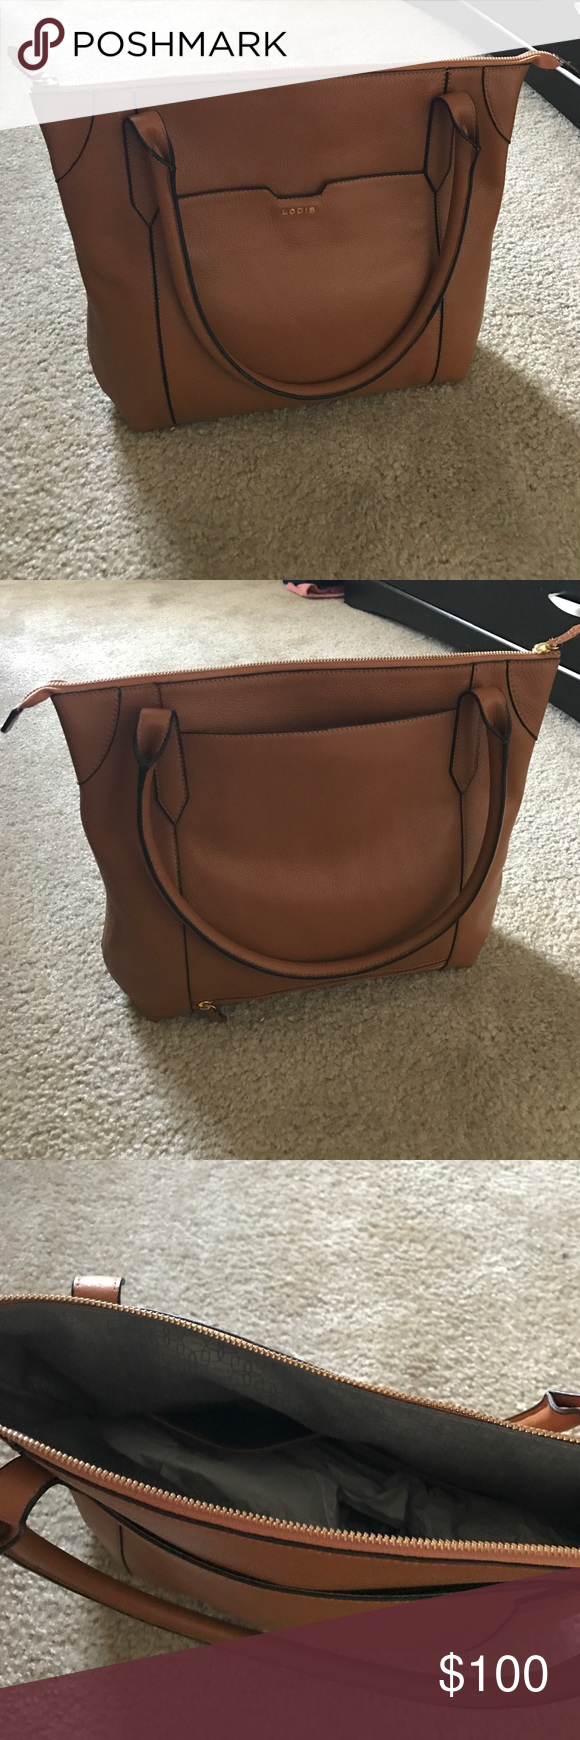 a1cb78e64 NEW Lodis Kiera Tote Light brown, leather, never used, still has packing  inside and spacious Lodis Bags Totes